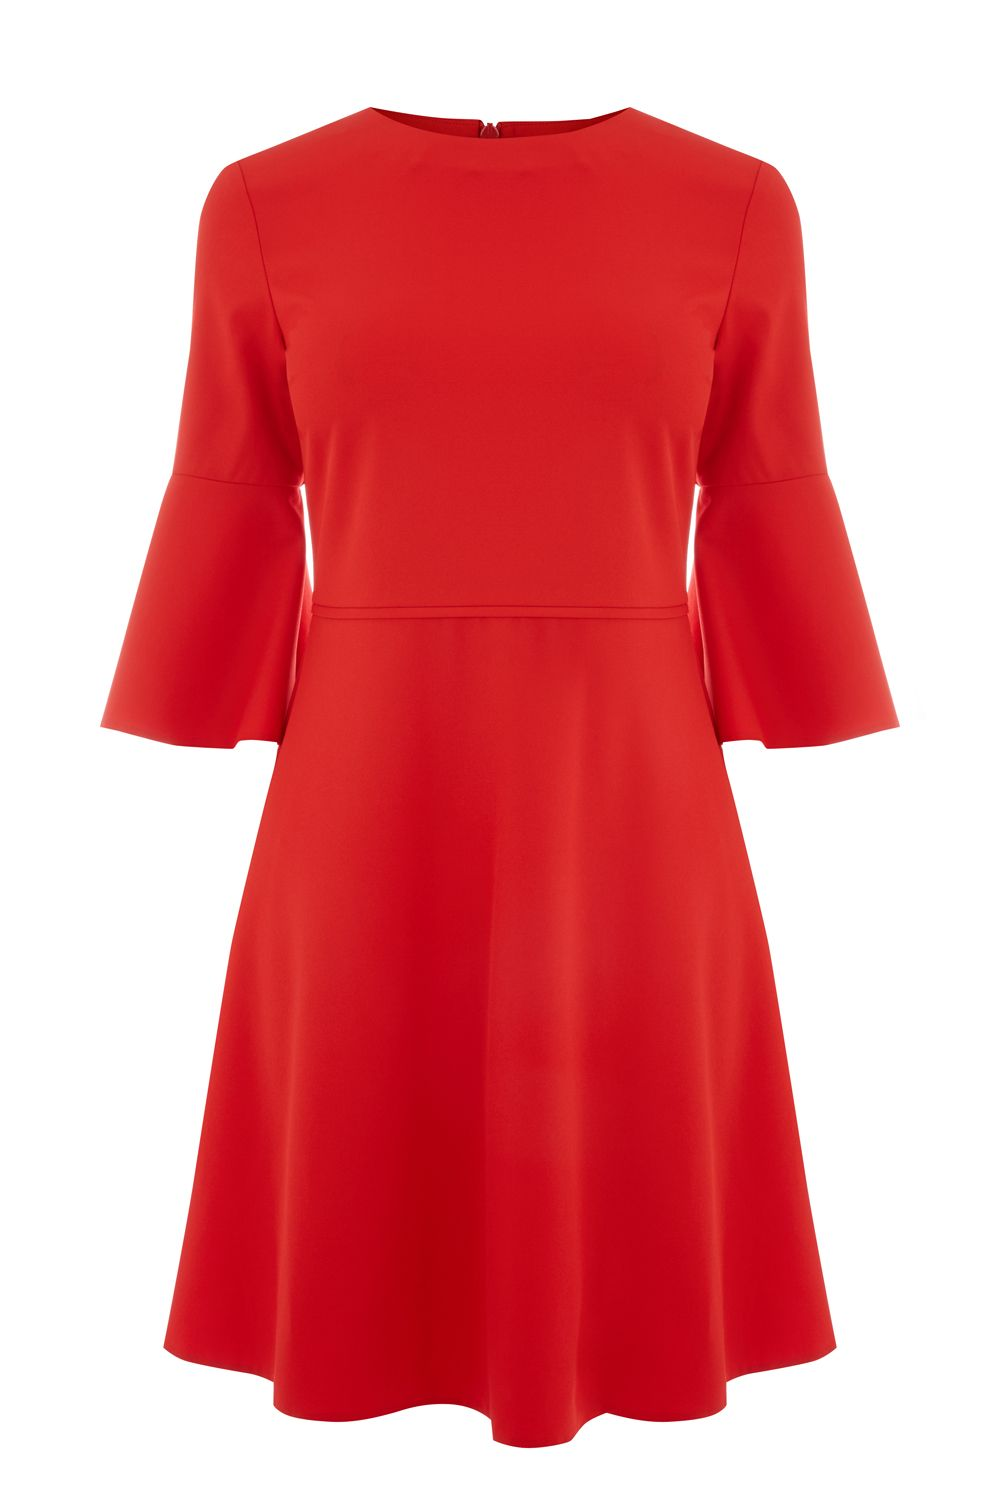 Oasis Flute Sleeve Dress, Red